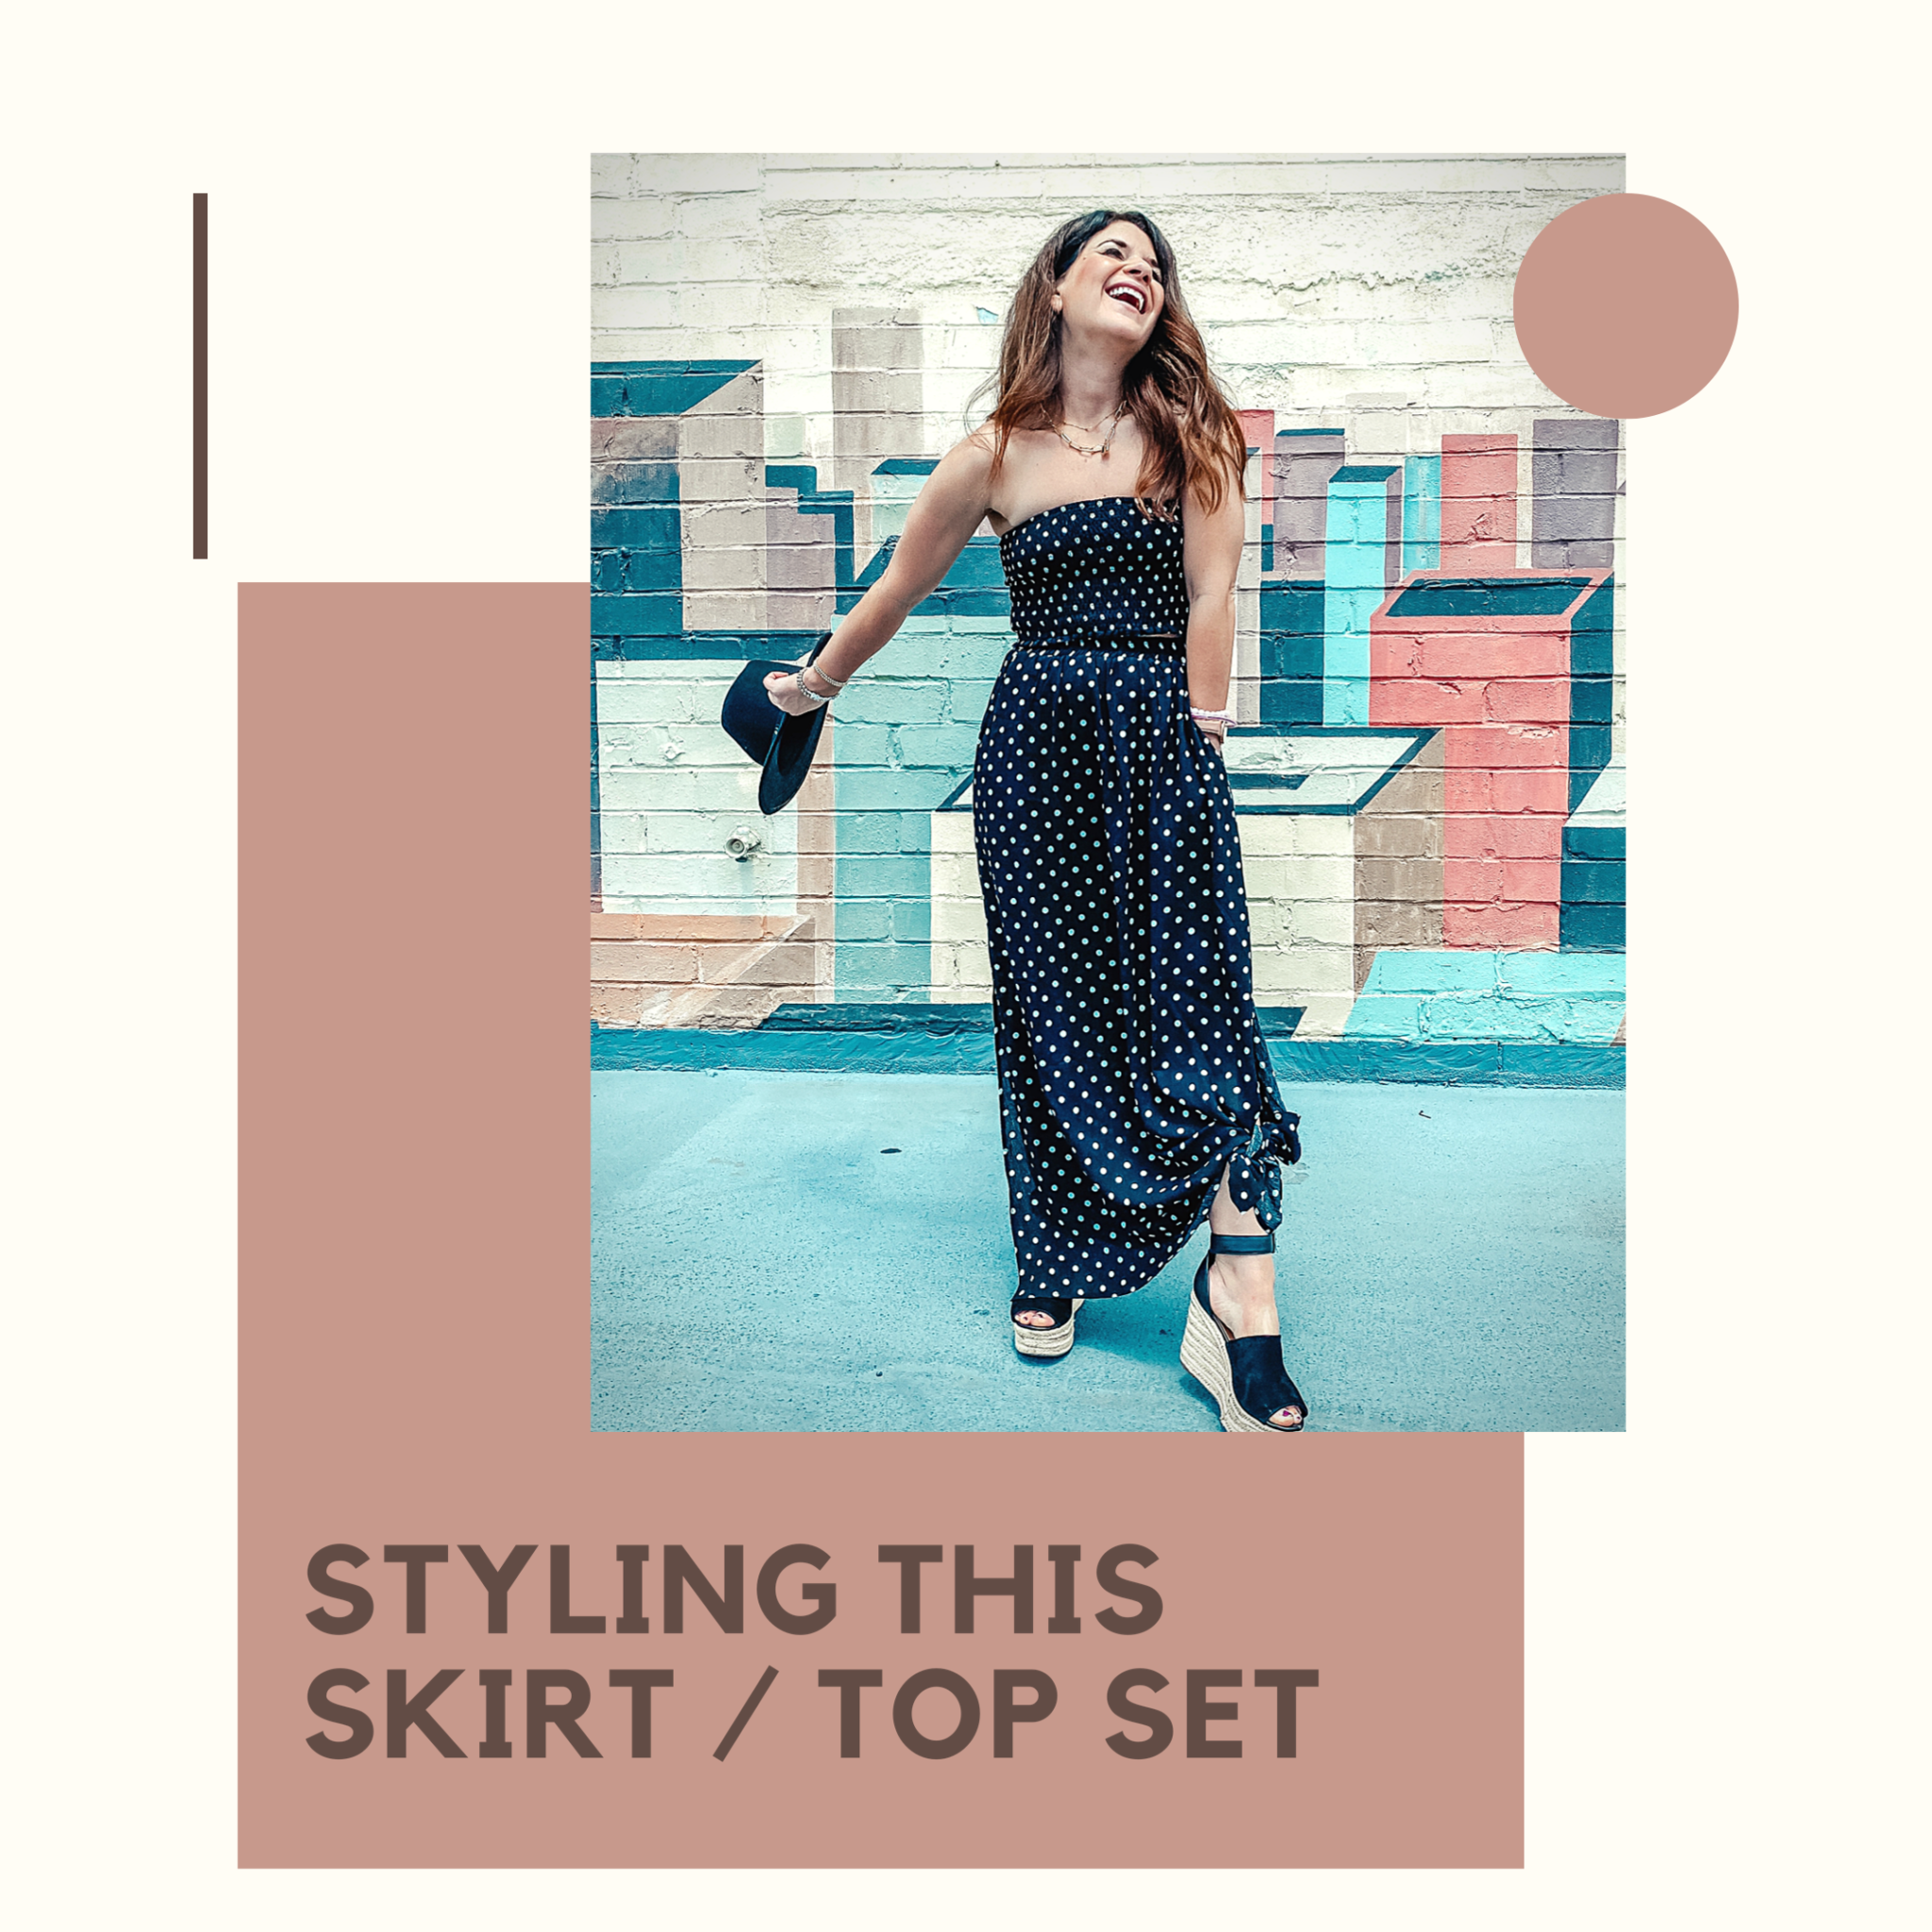 Styling this cute skirt/top set multiple ways